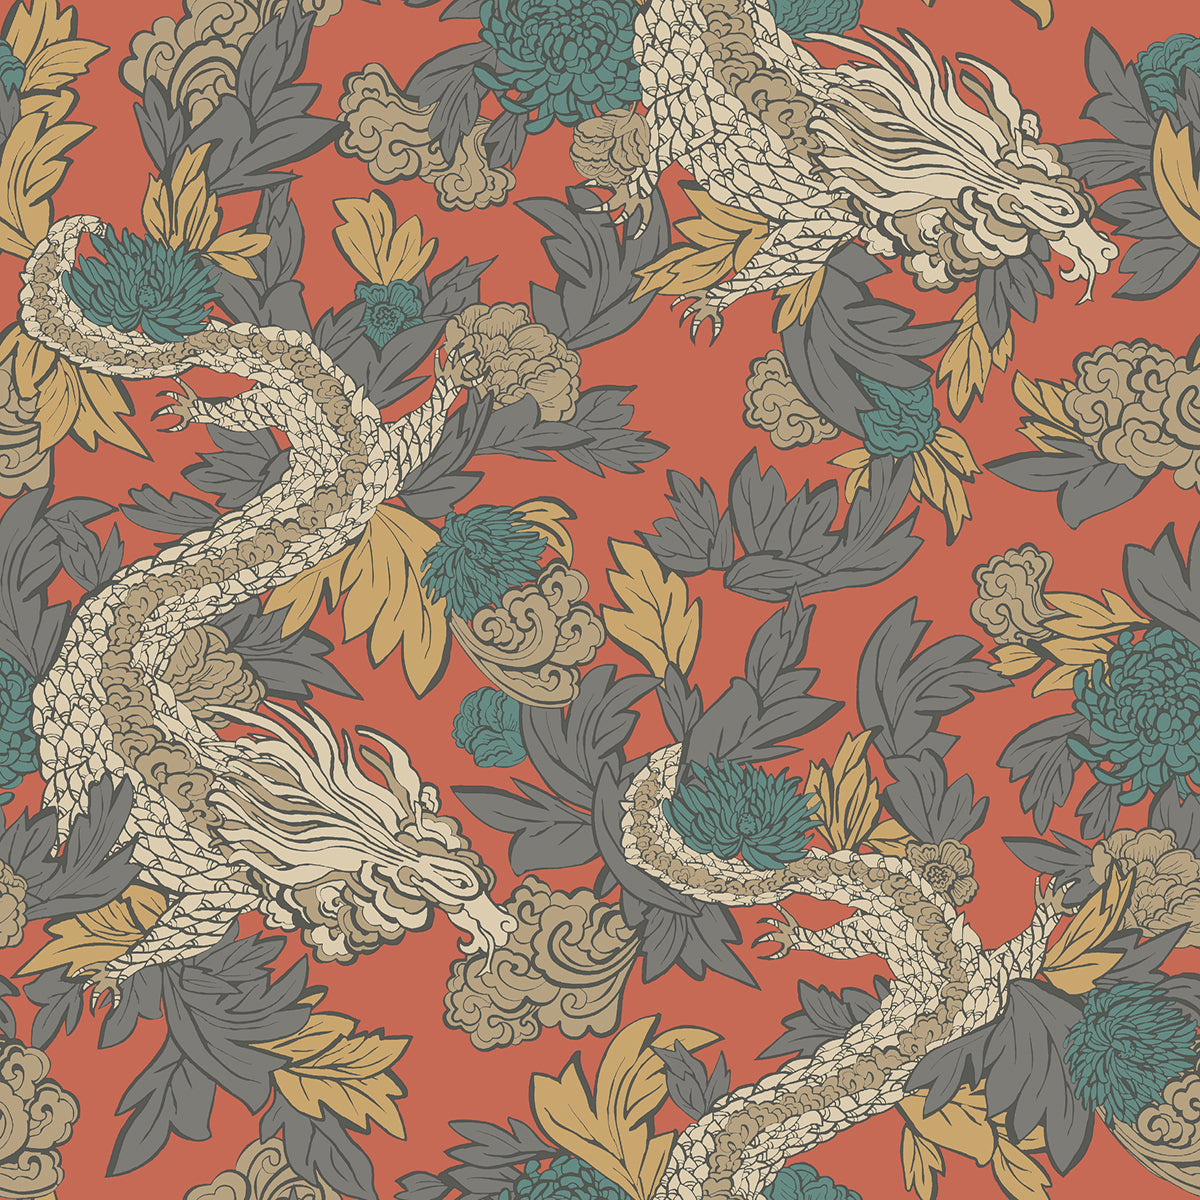 Dwell Studio Ming Dragon Wallpaper - Oranges in Orange/rust